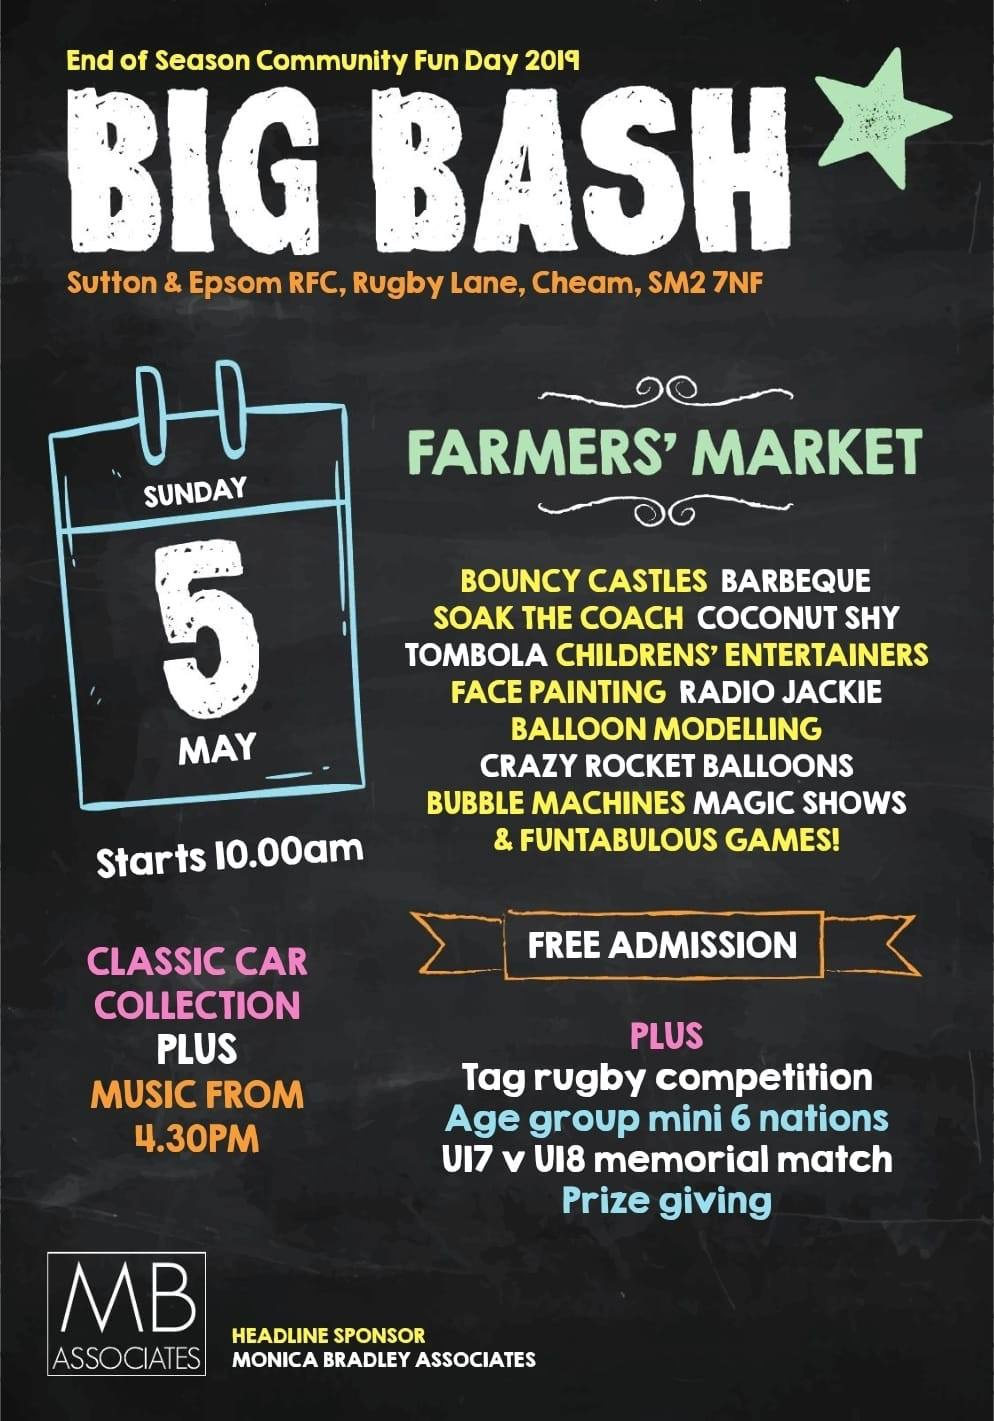 BIG BASH -SUTTON & EPSOM RUGBYFOOTBALL CLUB - Sunday 5th May 2019Time: 10am - 4pmVenue: Epsom, Surrey